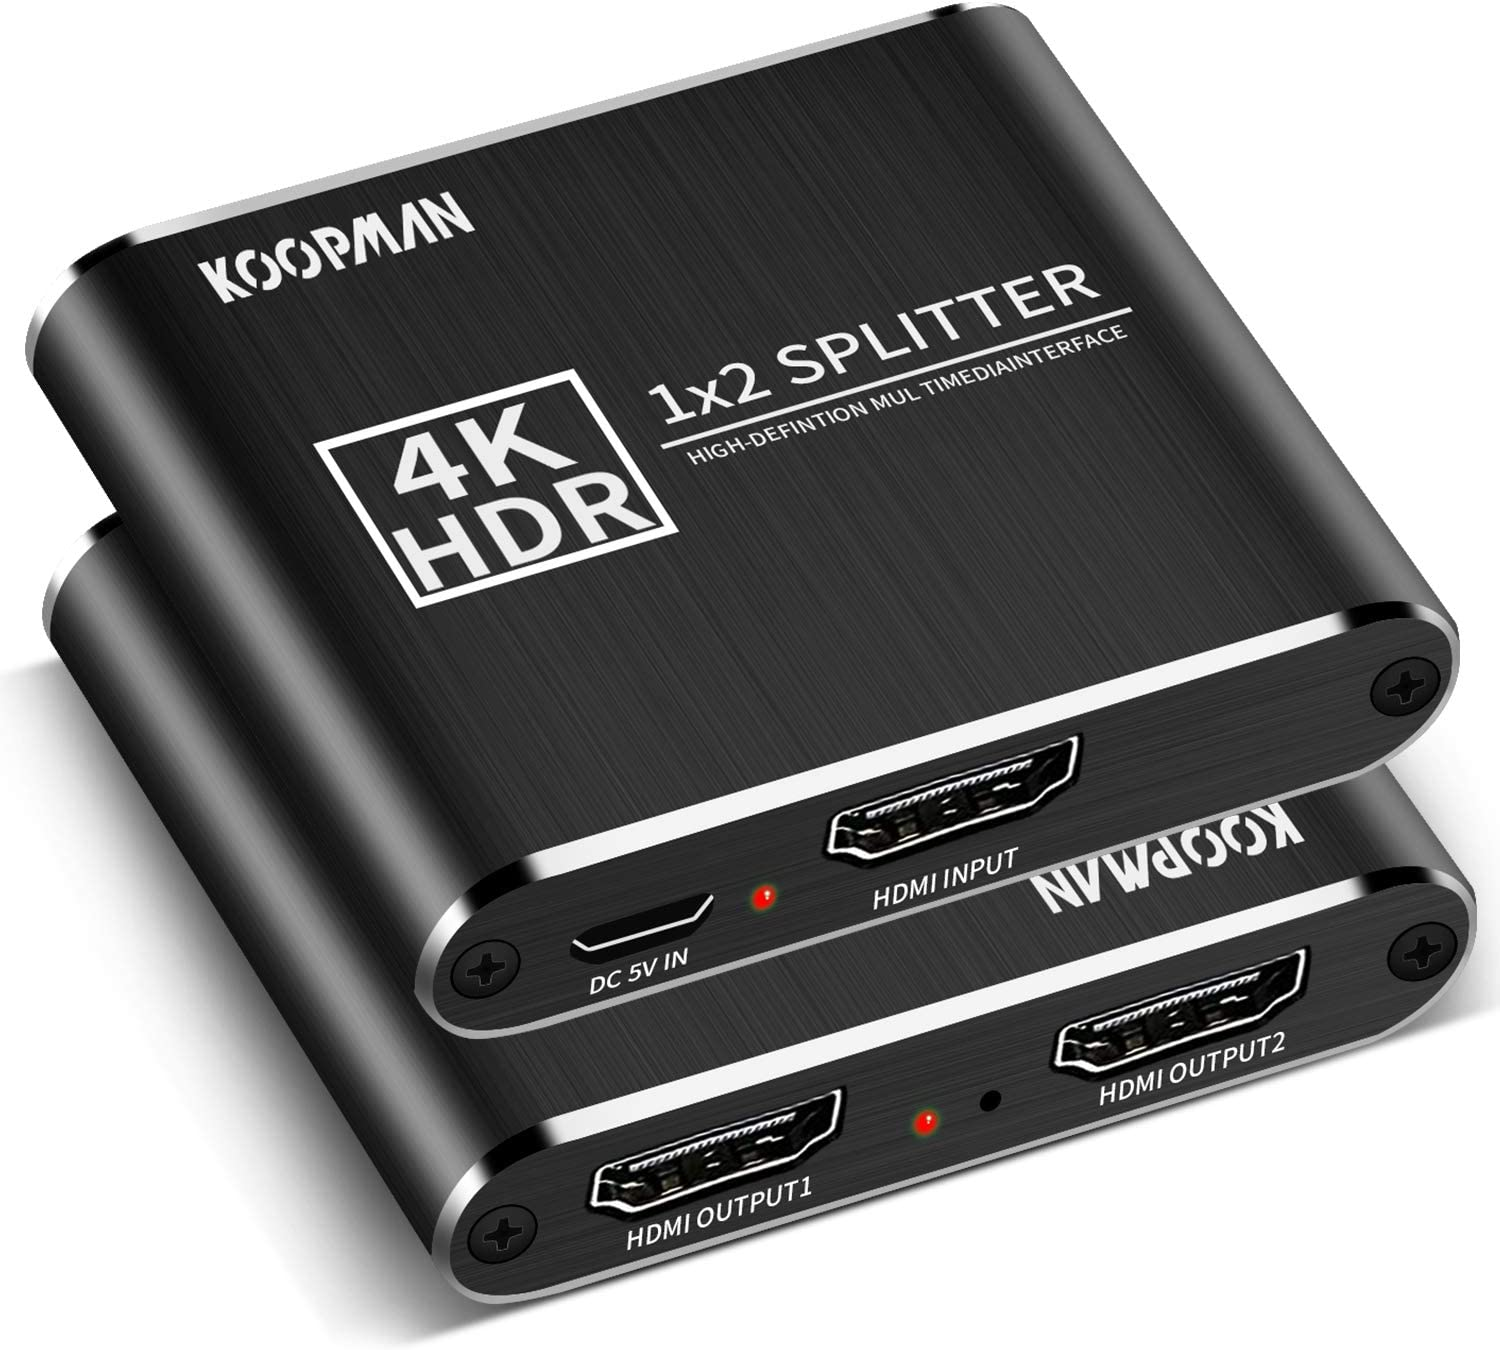 HDMI Splitter 1 in 2 Out, Koopman 4K Aluminum Powered V1.4 HDMI Splitter Supports 4K 30Hz, Full HD 1080p and 3D for Xbox PS4 PS3 Nintendo Consoles Fire Stick Roku Apple TV Blu-Ray Player HDTV